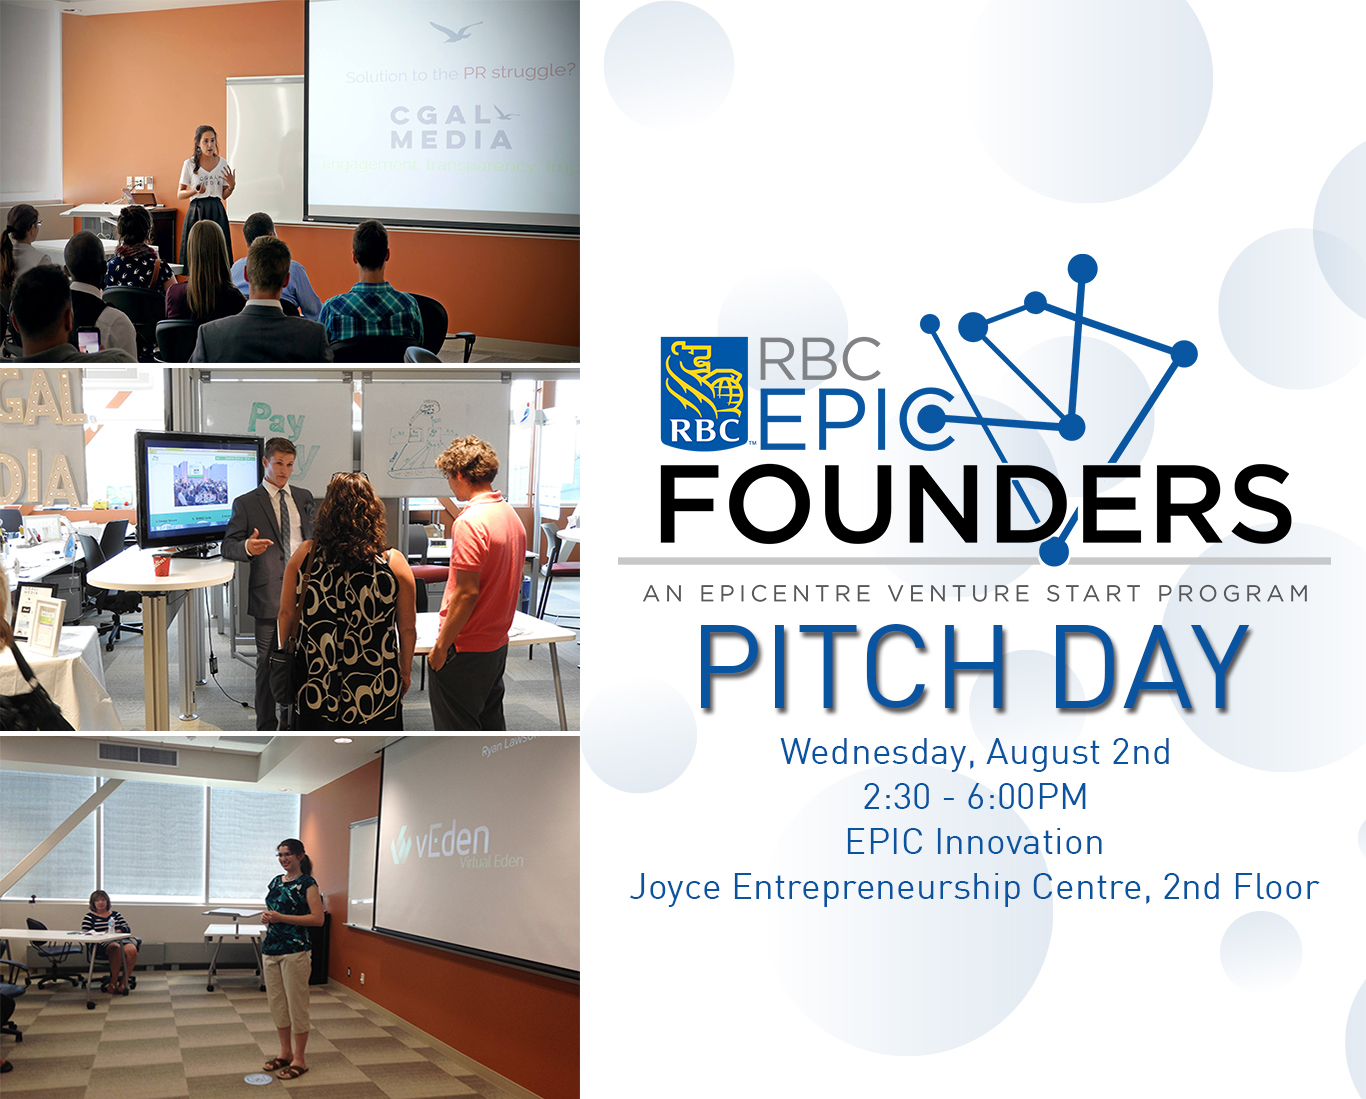 RBC EPIC Founders Pitch Day 2017